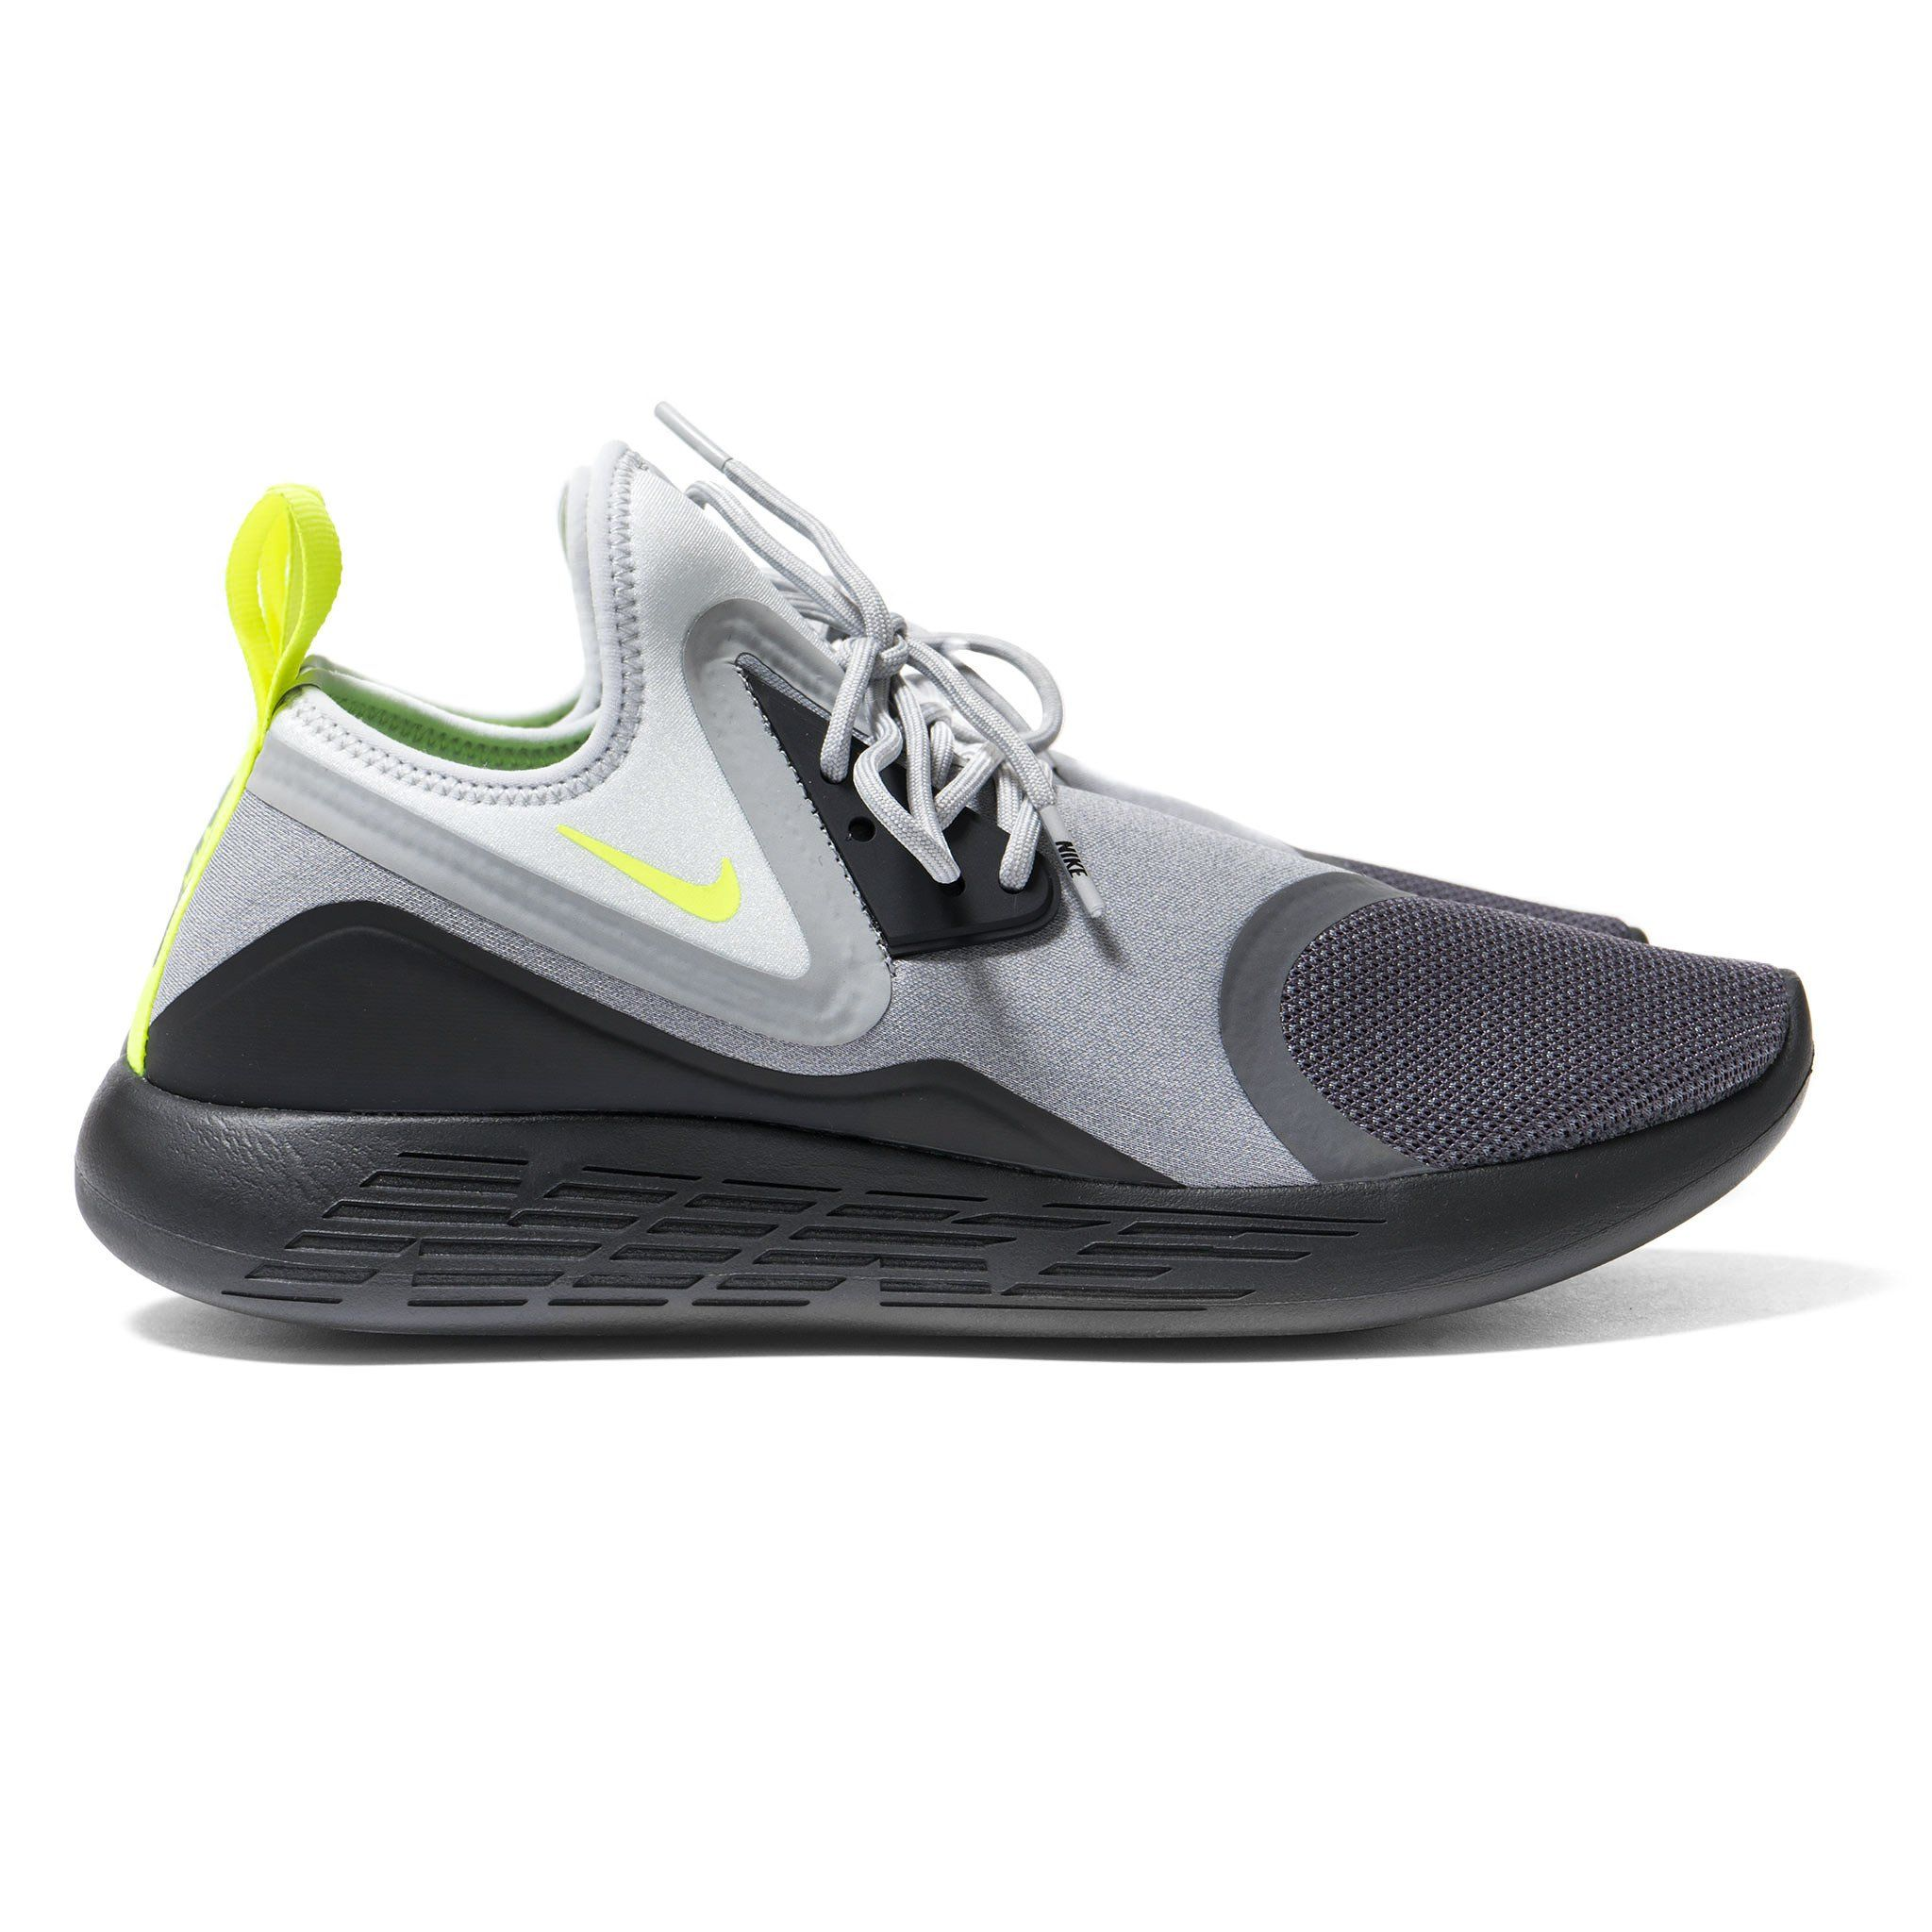 The Nike Lunarcharge Neon Is Now Arriving At Select Retailers Overseas Nike Sneakers Running Shoes Design